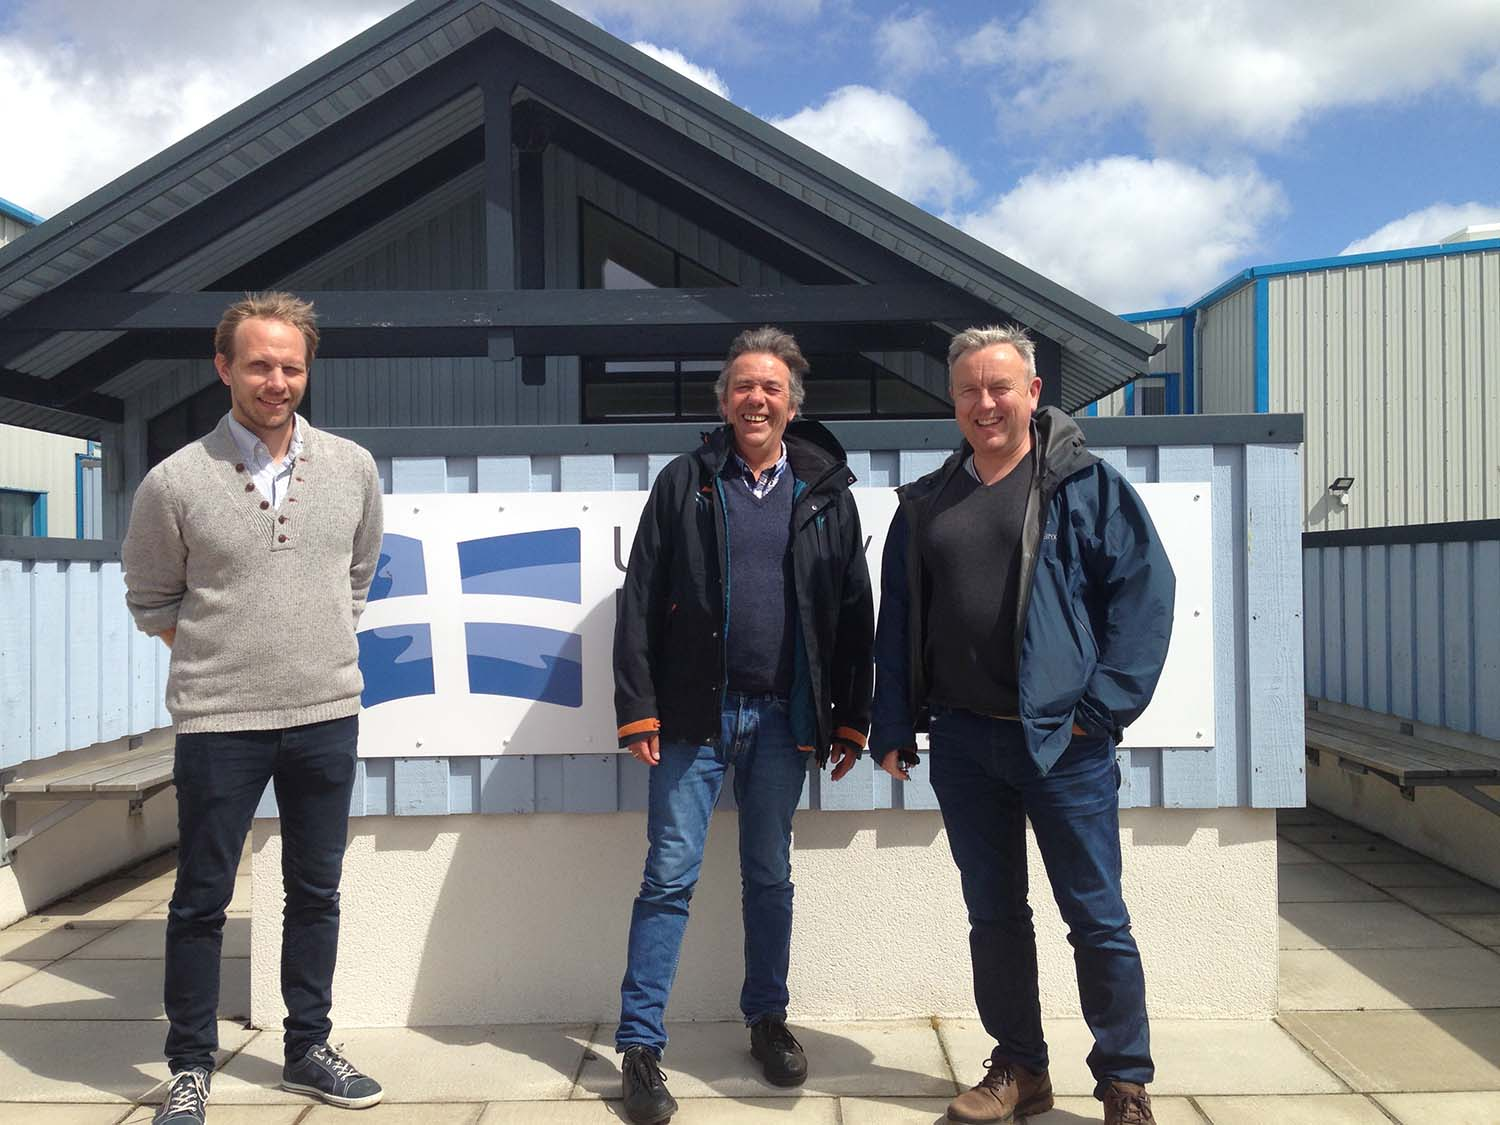 Shetland Islands to Norway – Enhancing Employability and Developing Life Skills